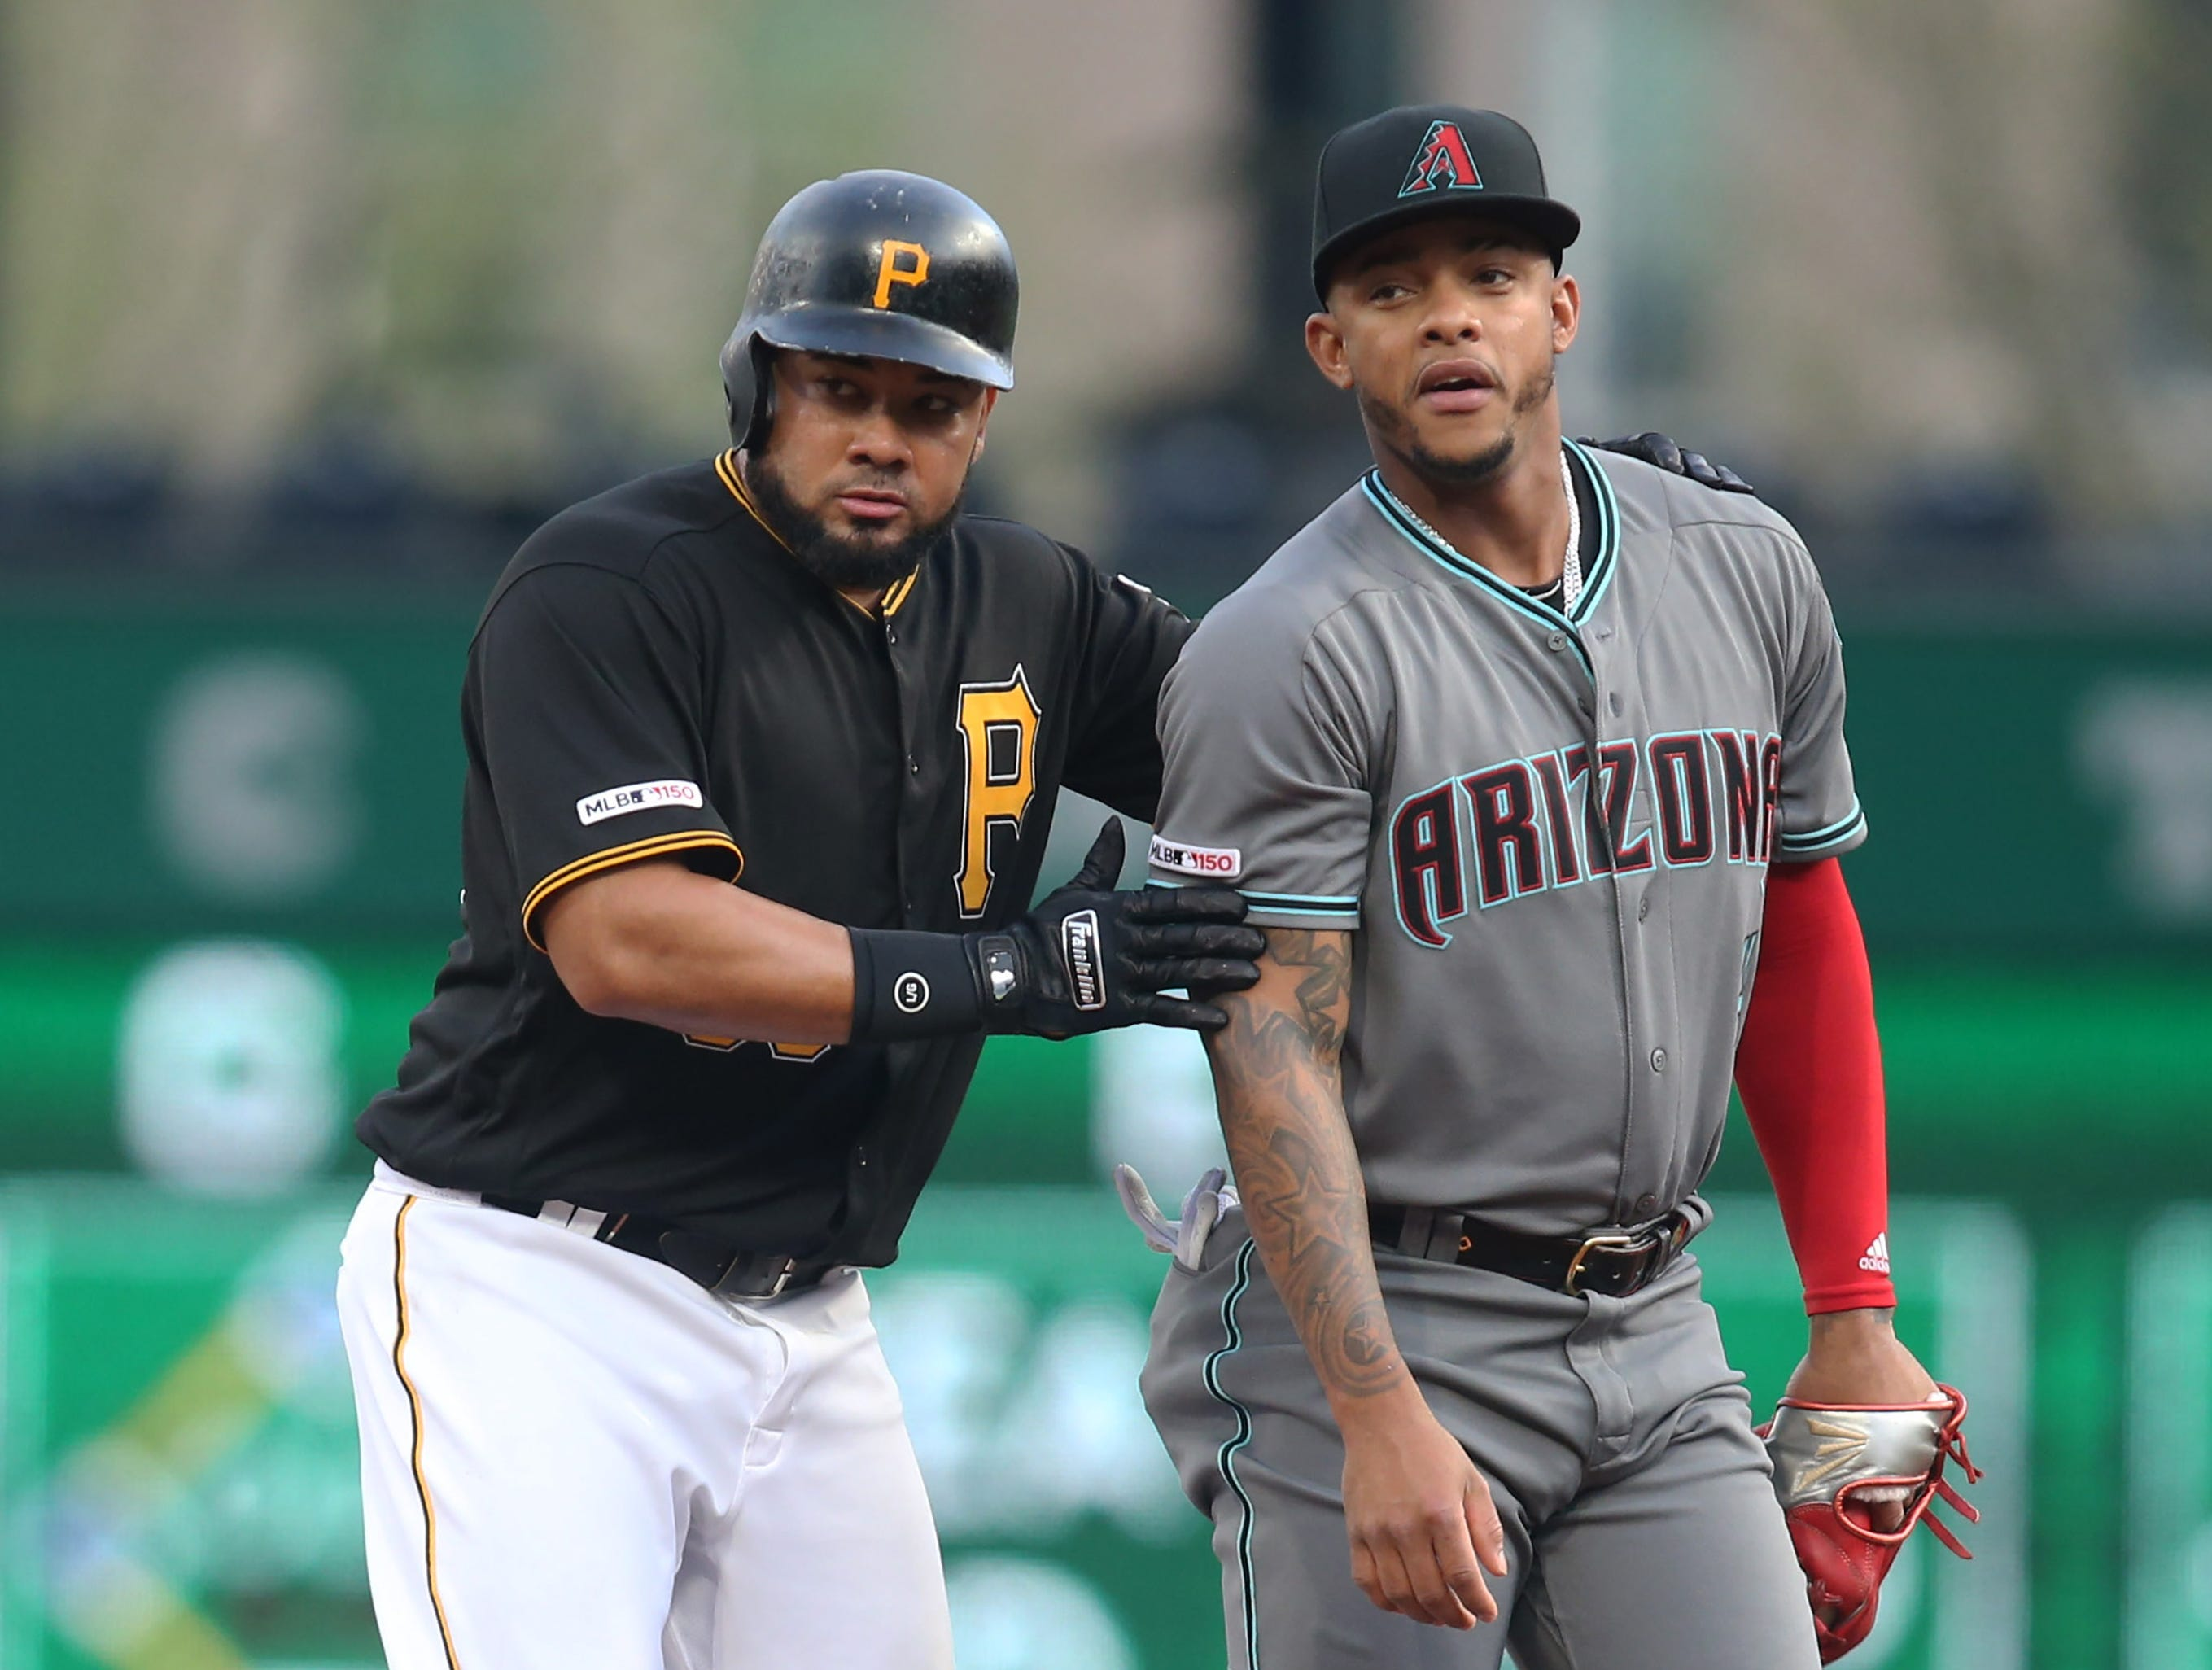 Apr 23, 2019; Pittsburgh, PA, USA;  Pittsburgh Pirates left fielder Melky Cabrera (53) reacts with Arizona Diamondbacks second baseman Ketel Marte (4) after hitting a double during the first inning at PNC Park. Mandatory Credit: Charles LeClaire-USA TODAY Sports